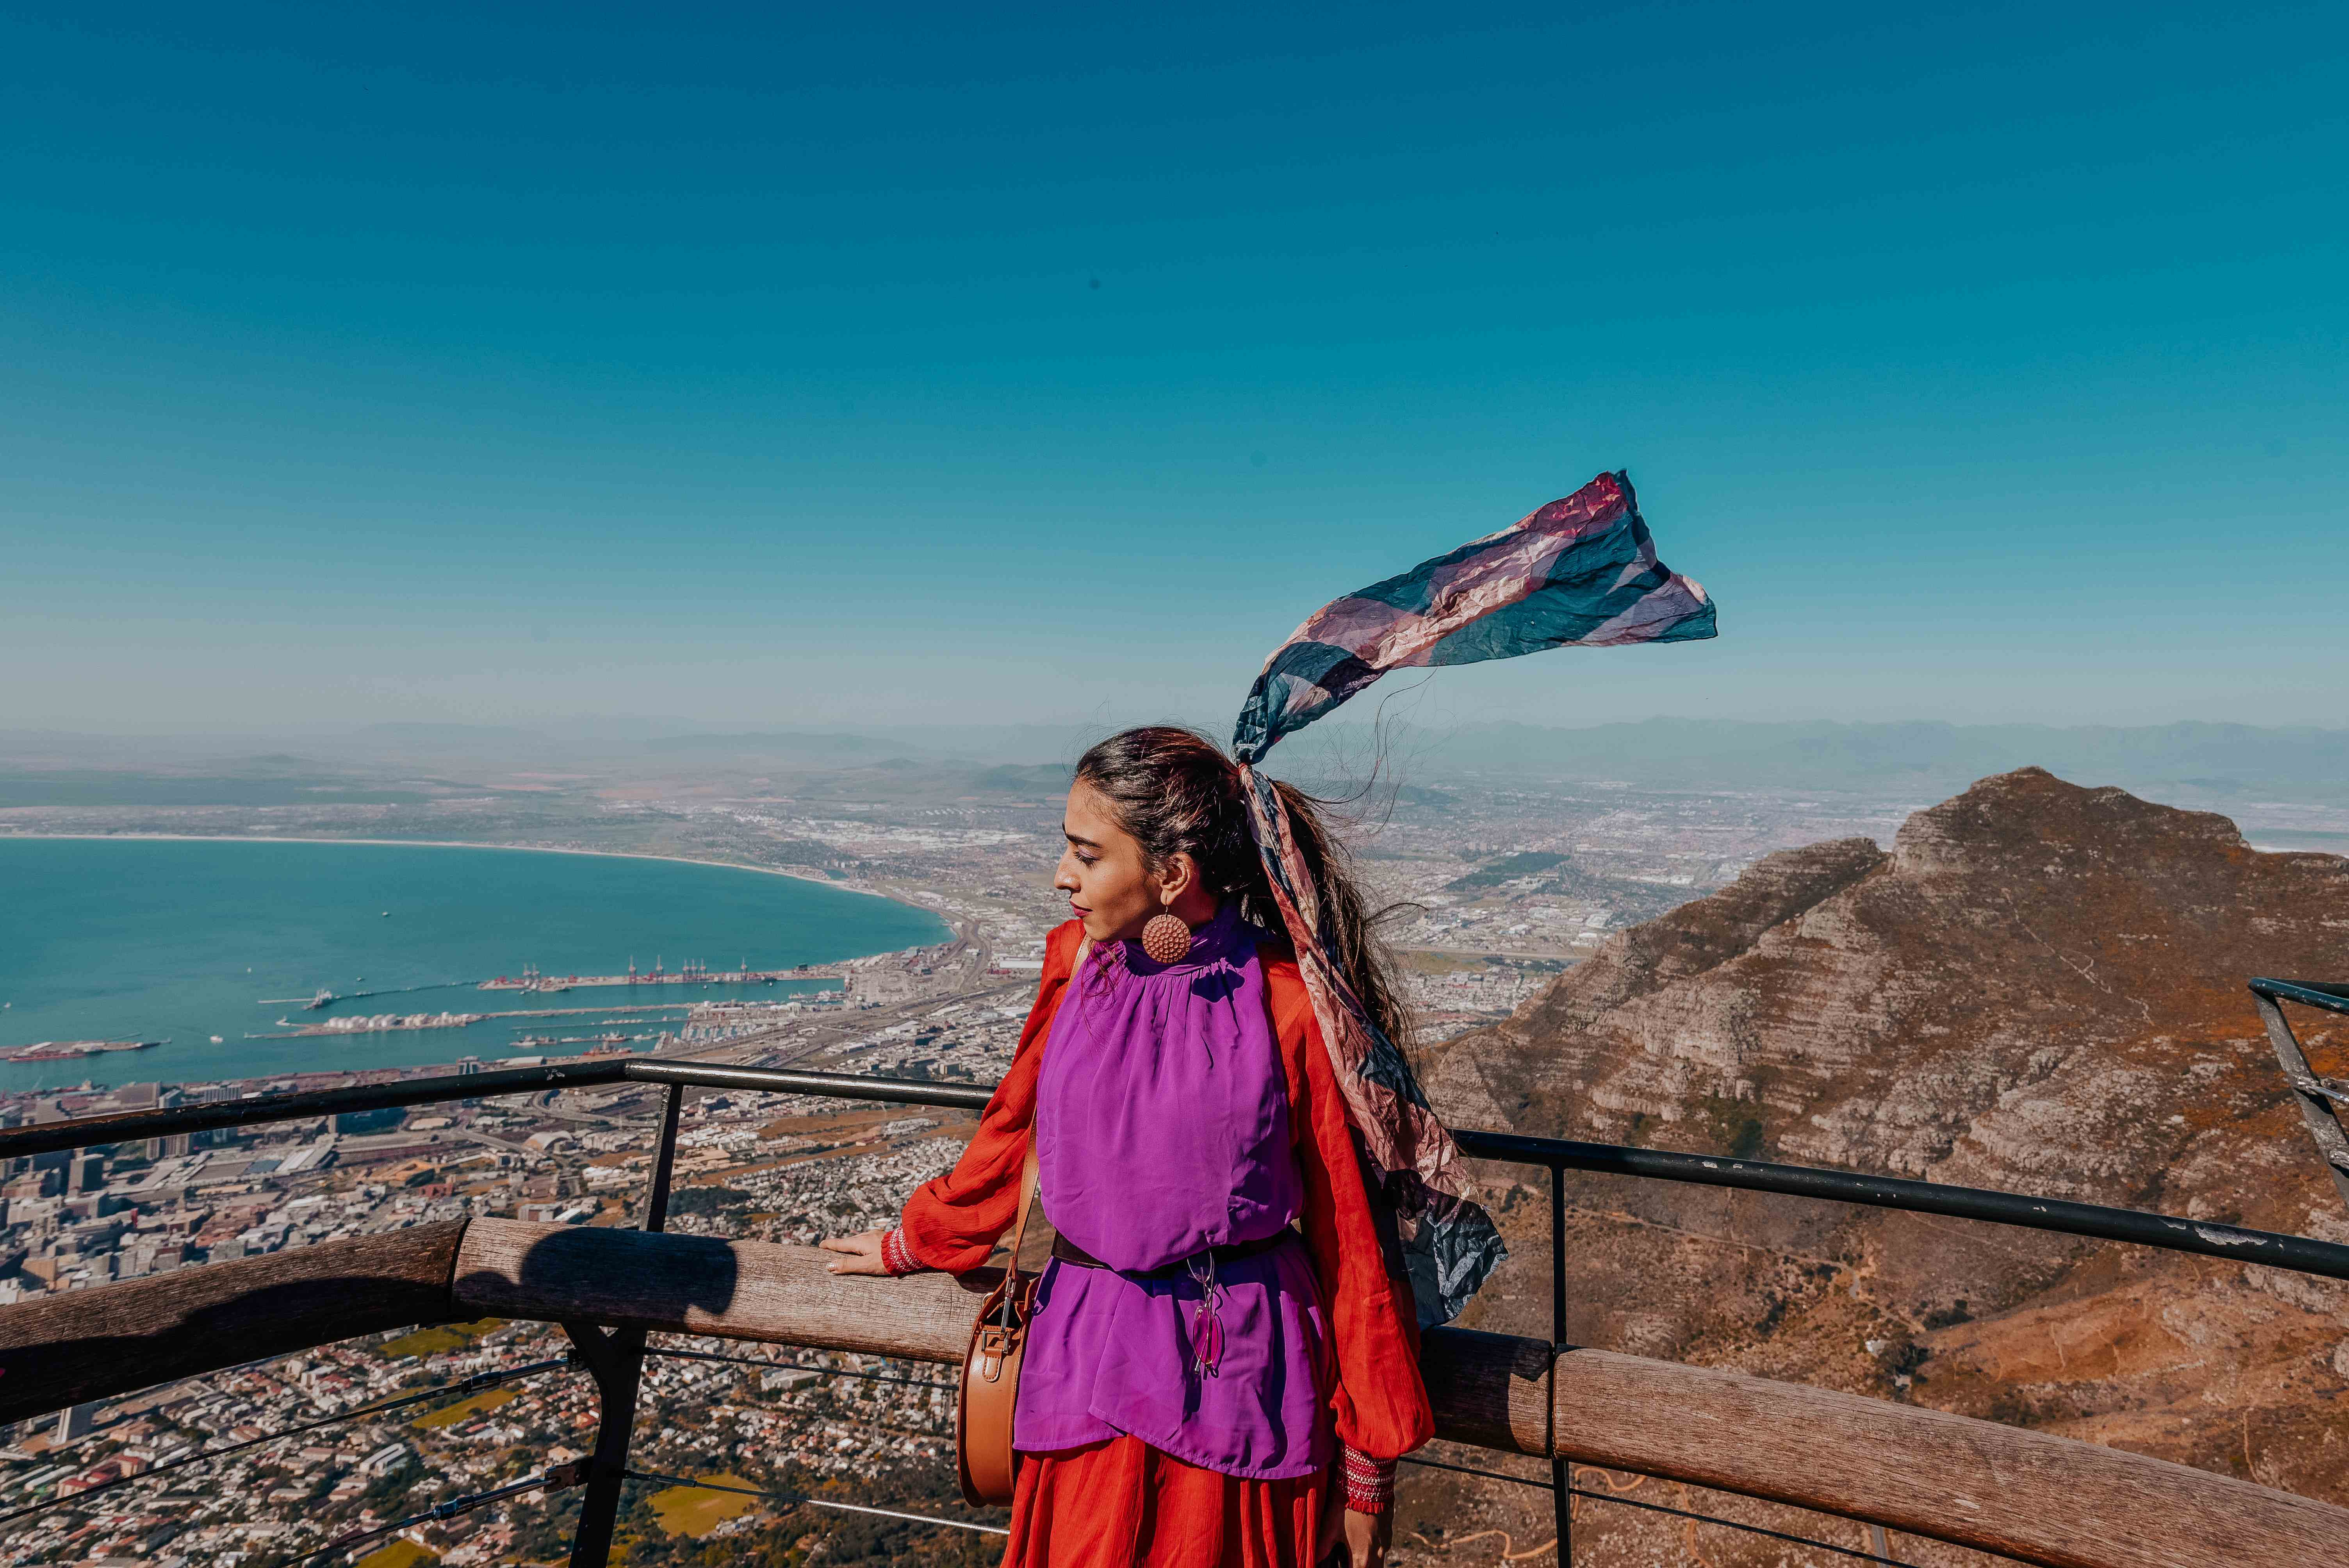 cape town, city, travel, travel blog, cape town travel diary, neha menghwani, indian blogger, travel blogger, cape point, long street, south africa, vero moda, shopping, table mountain, museum tour, wine tasting, table mountain top